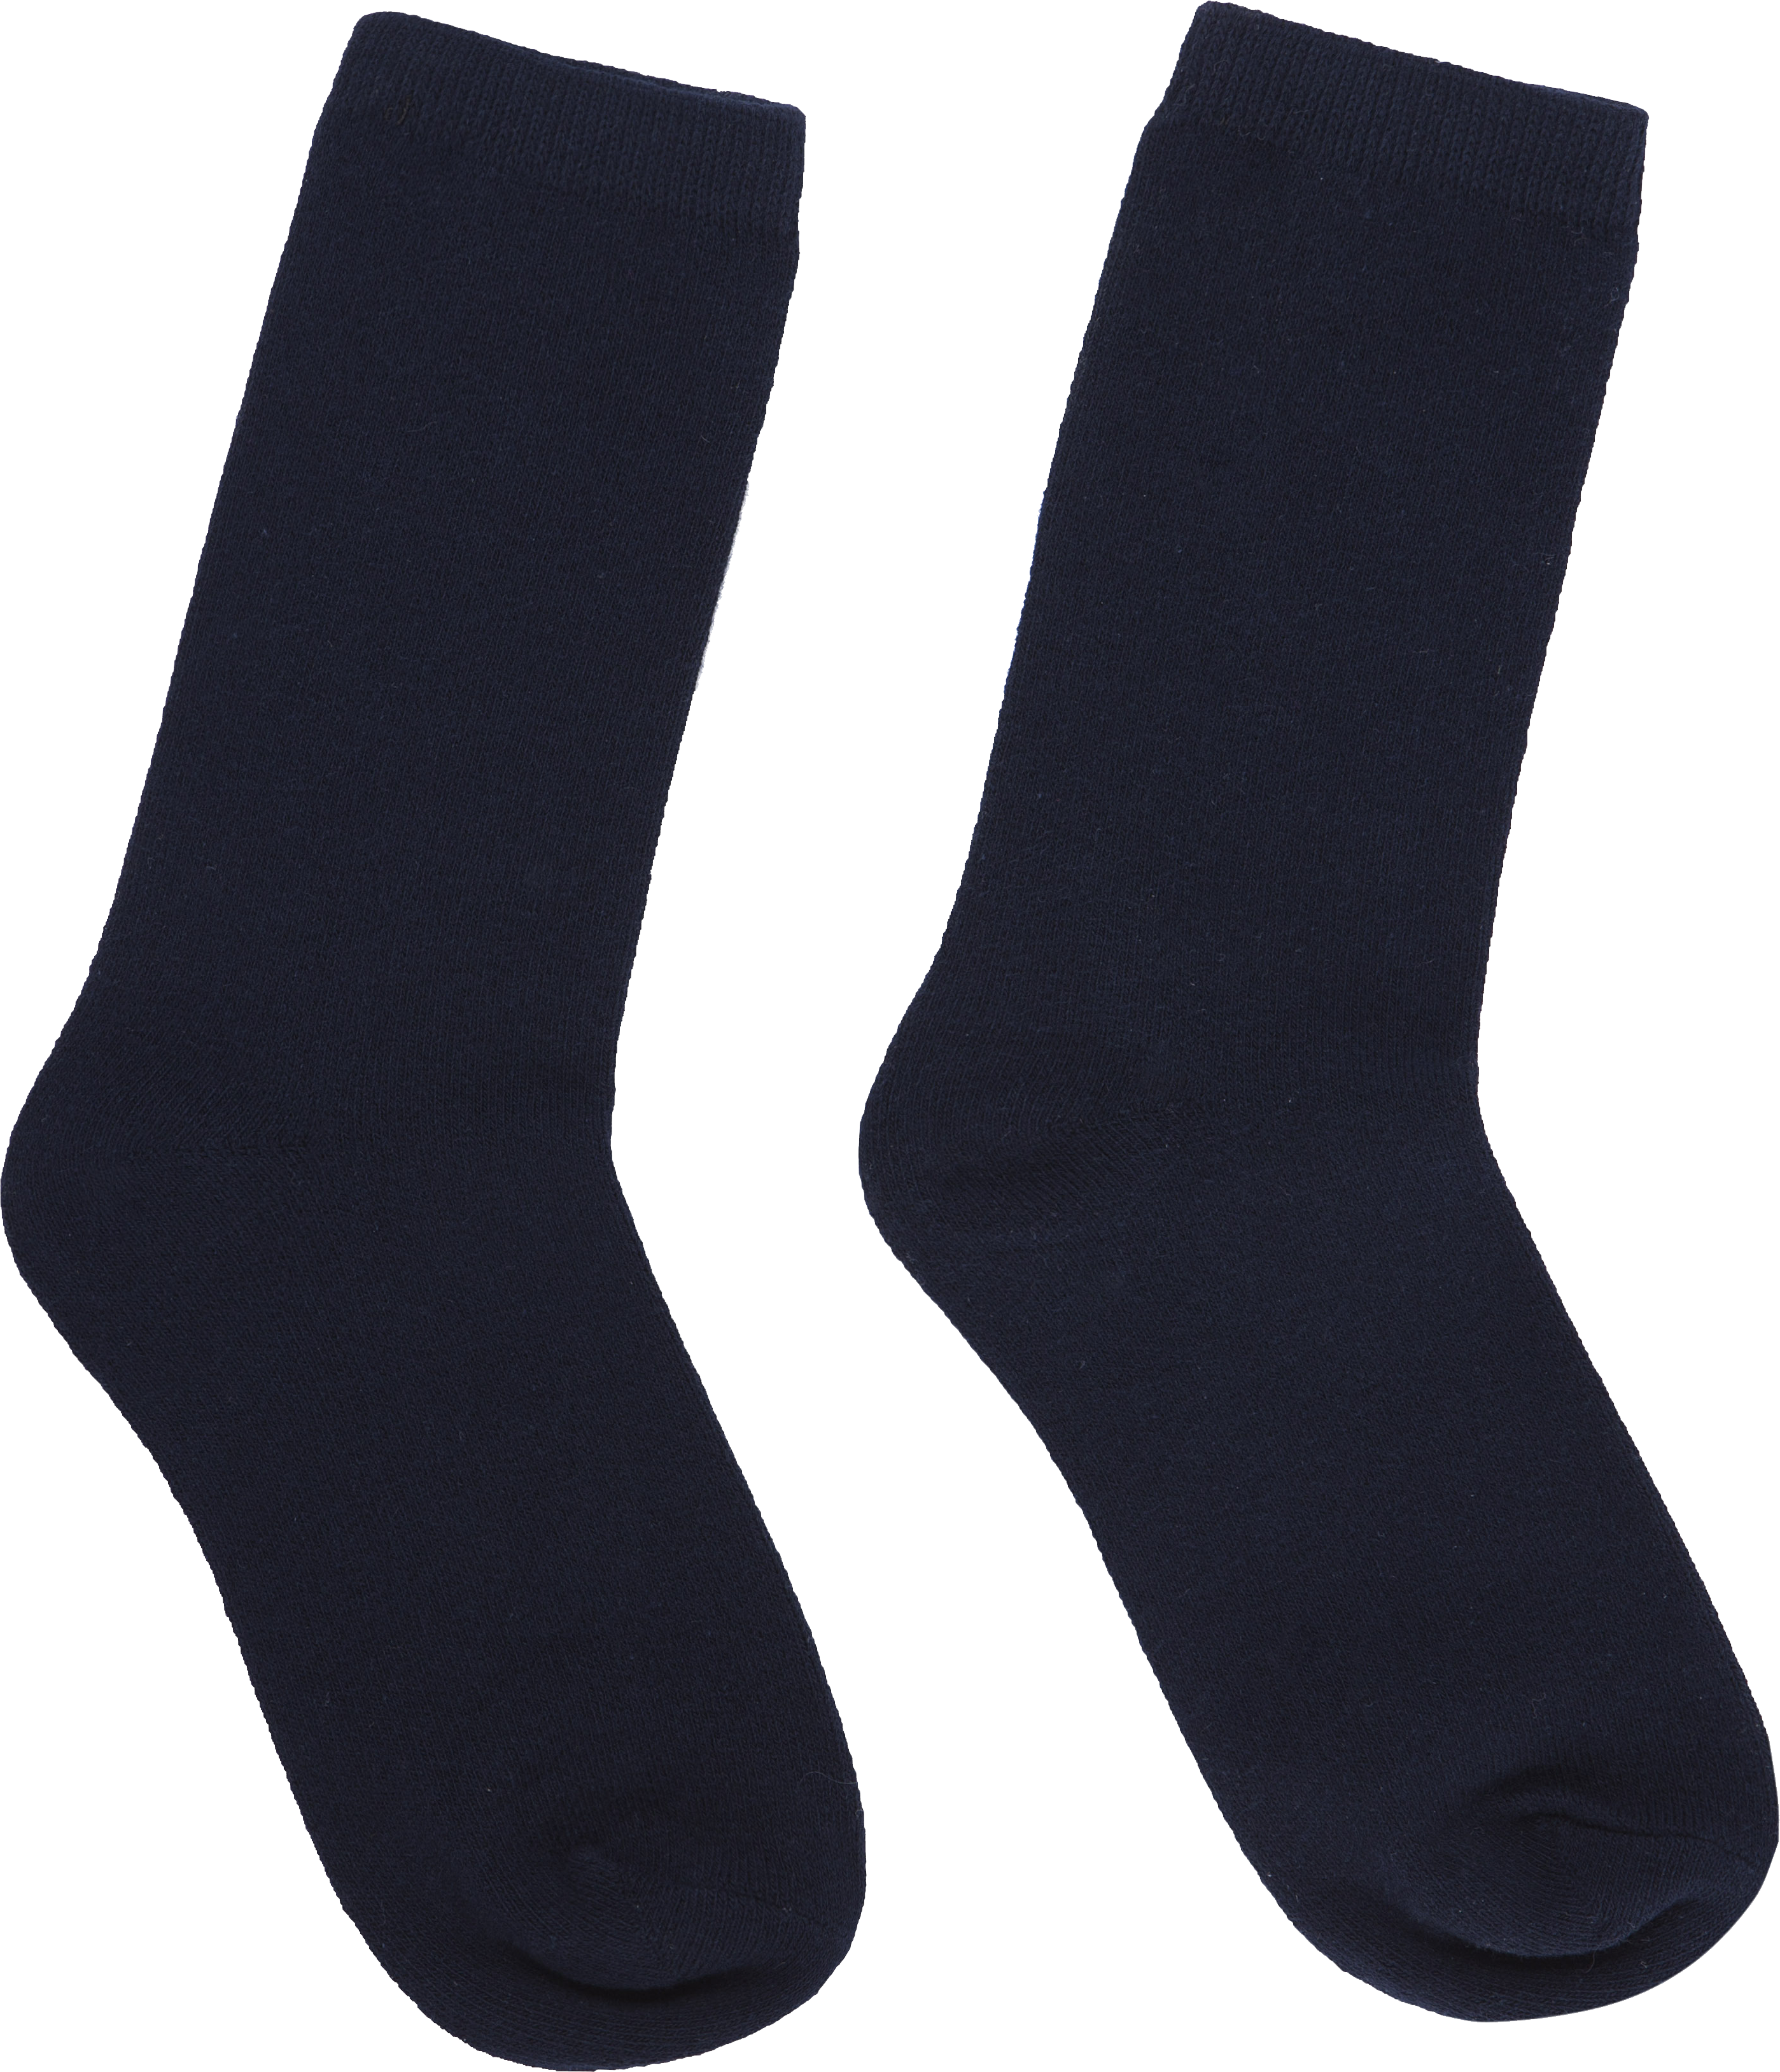 Socks png images free. Sock clip wool image library download